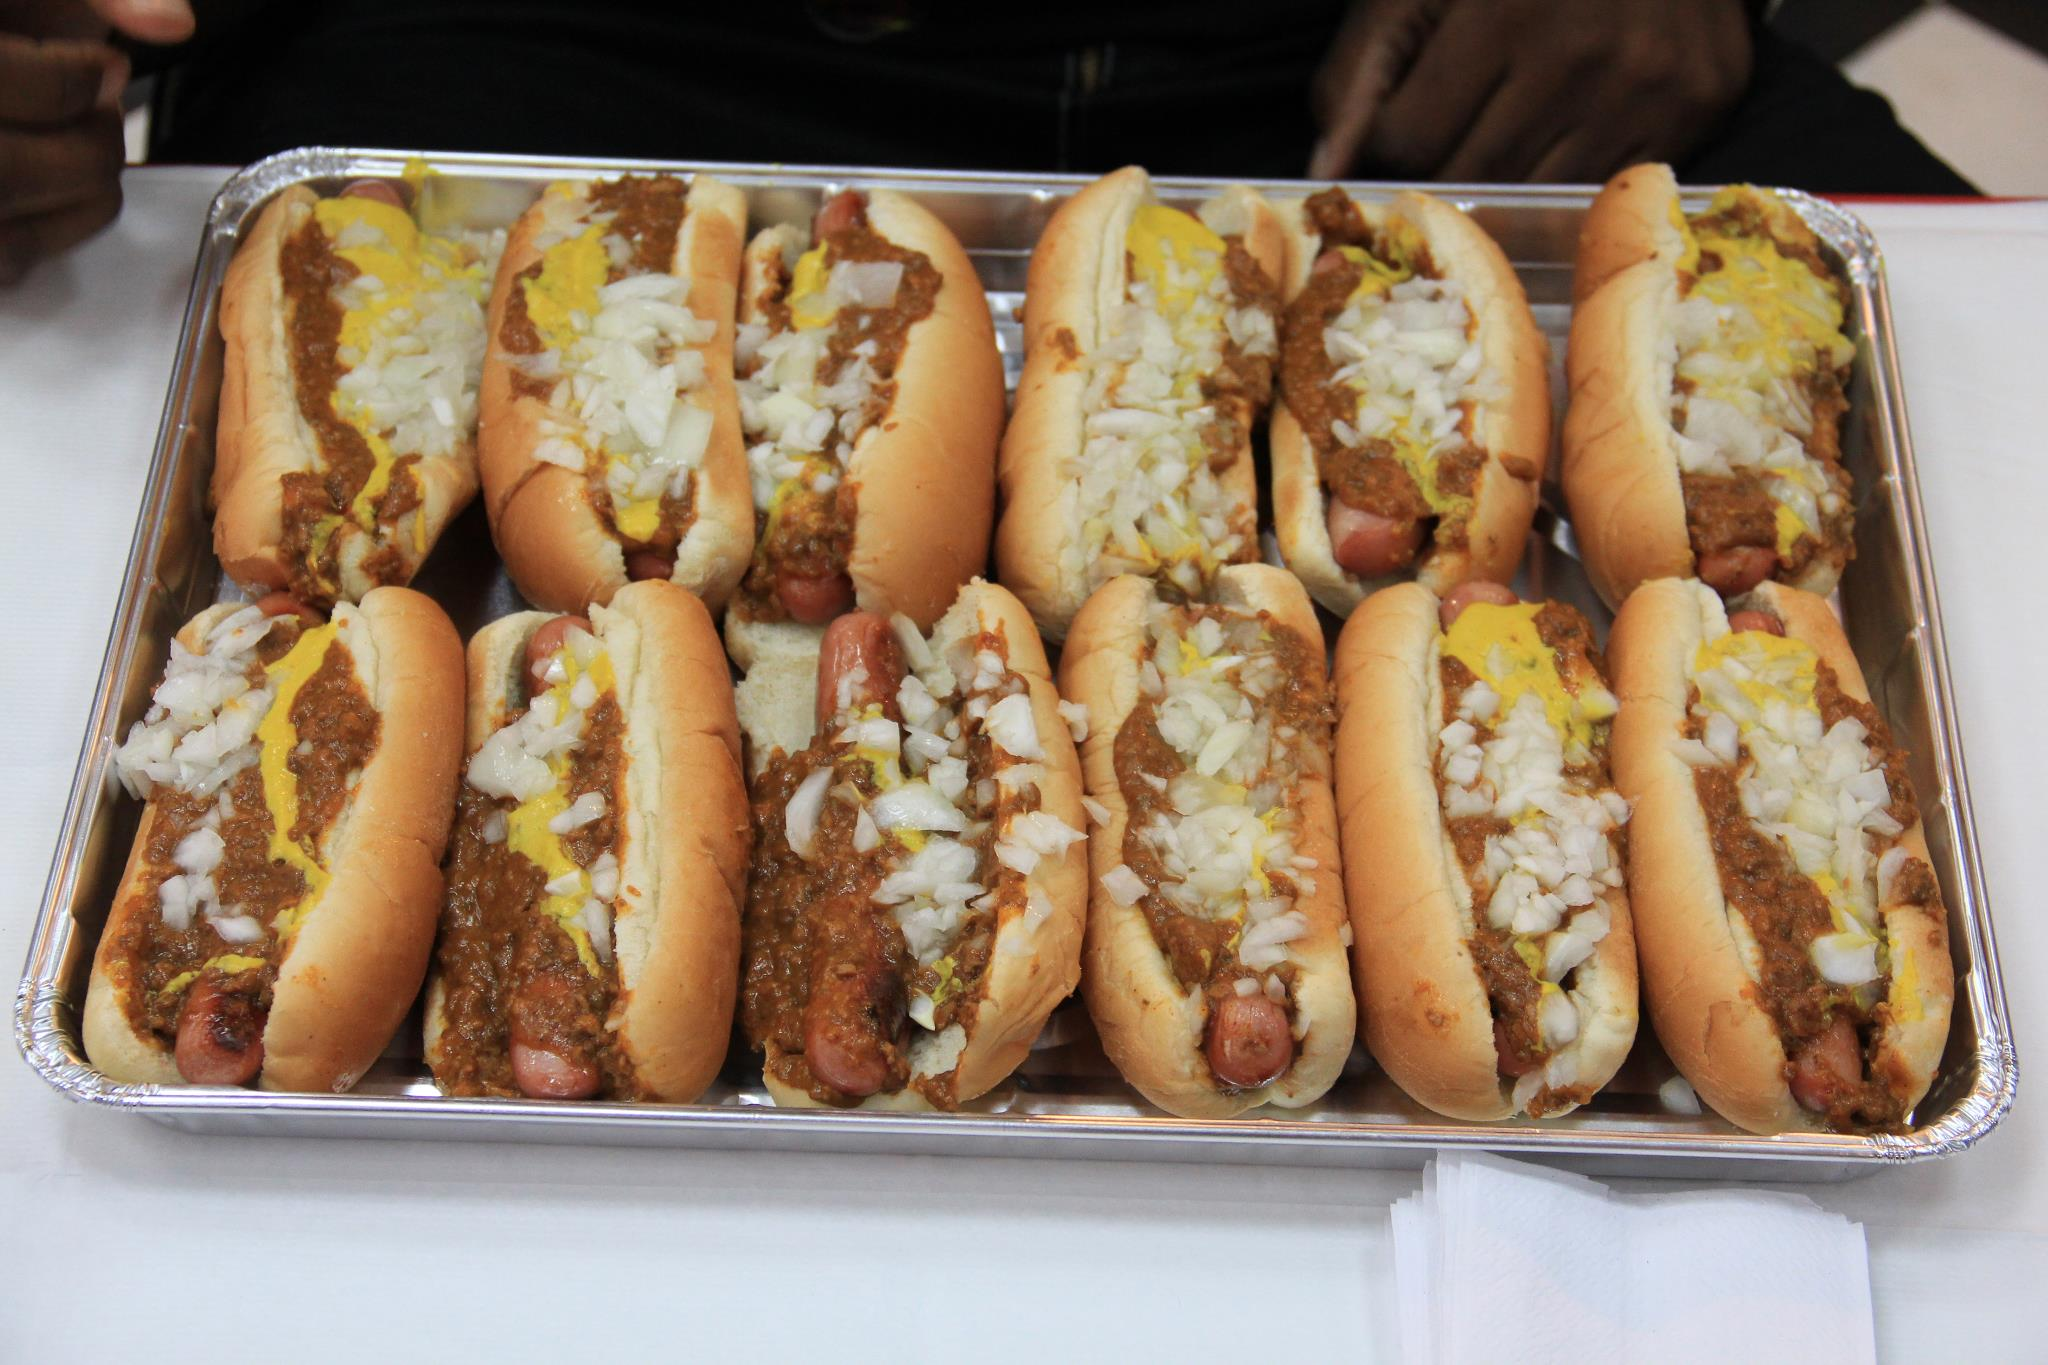 A tray of coneys from American Coney Island of Detroit